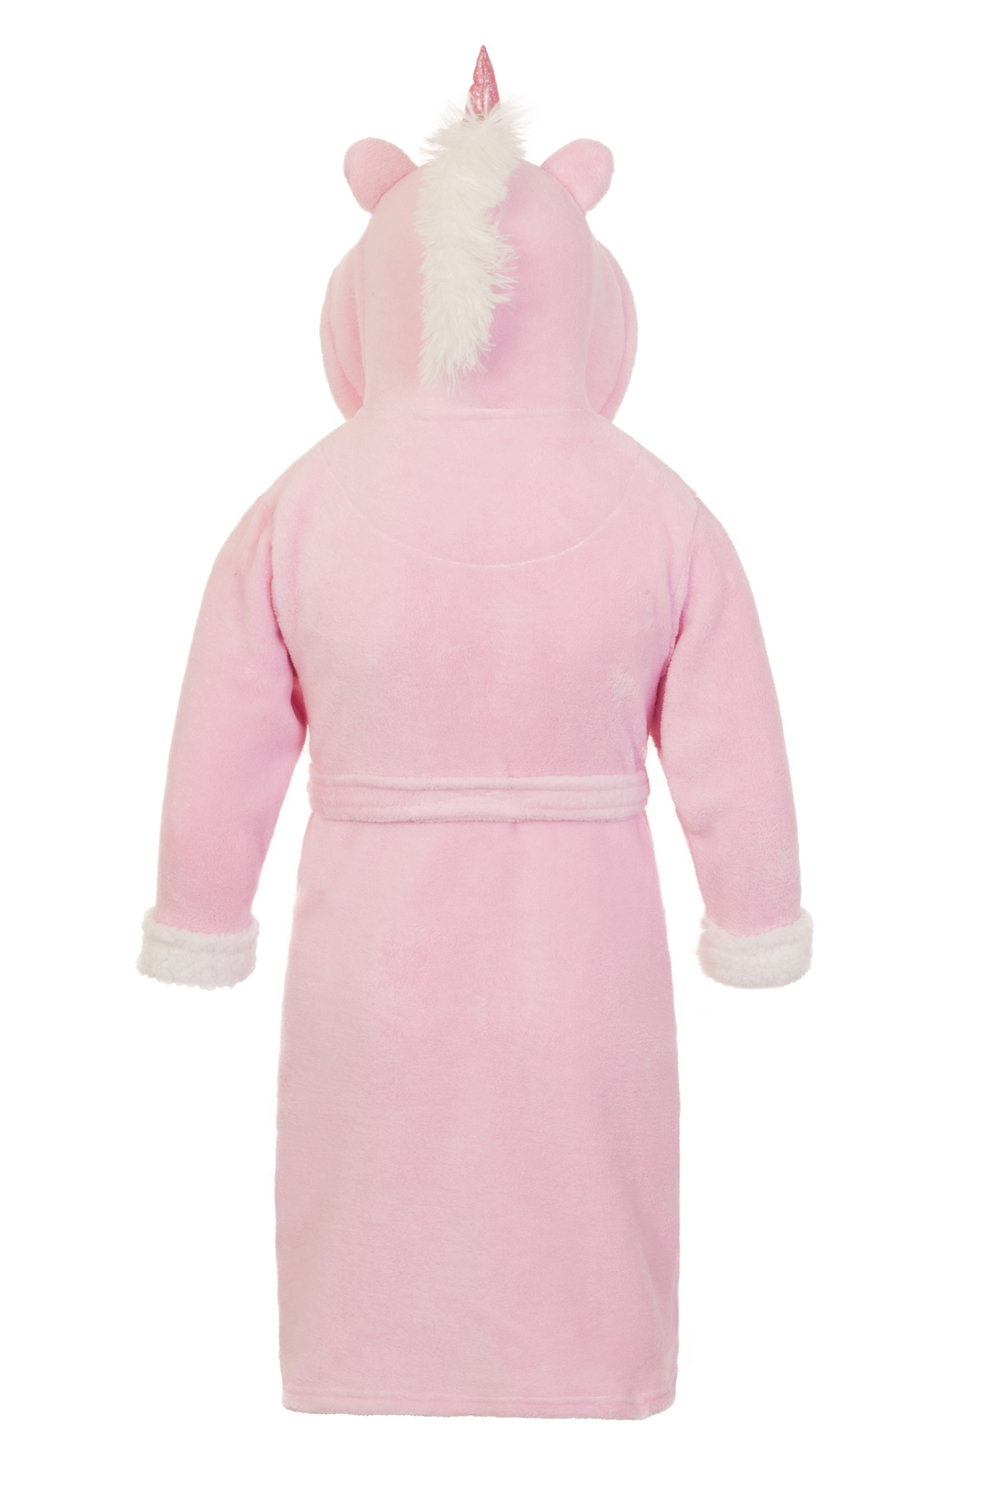 Nifty Kids Animal Bath Robes New Luxury Hooded Childs Dressing Gown Nightwear